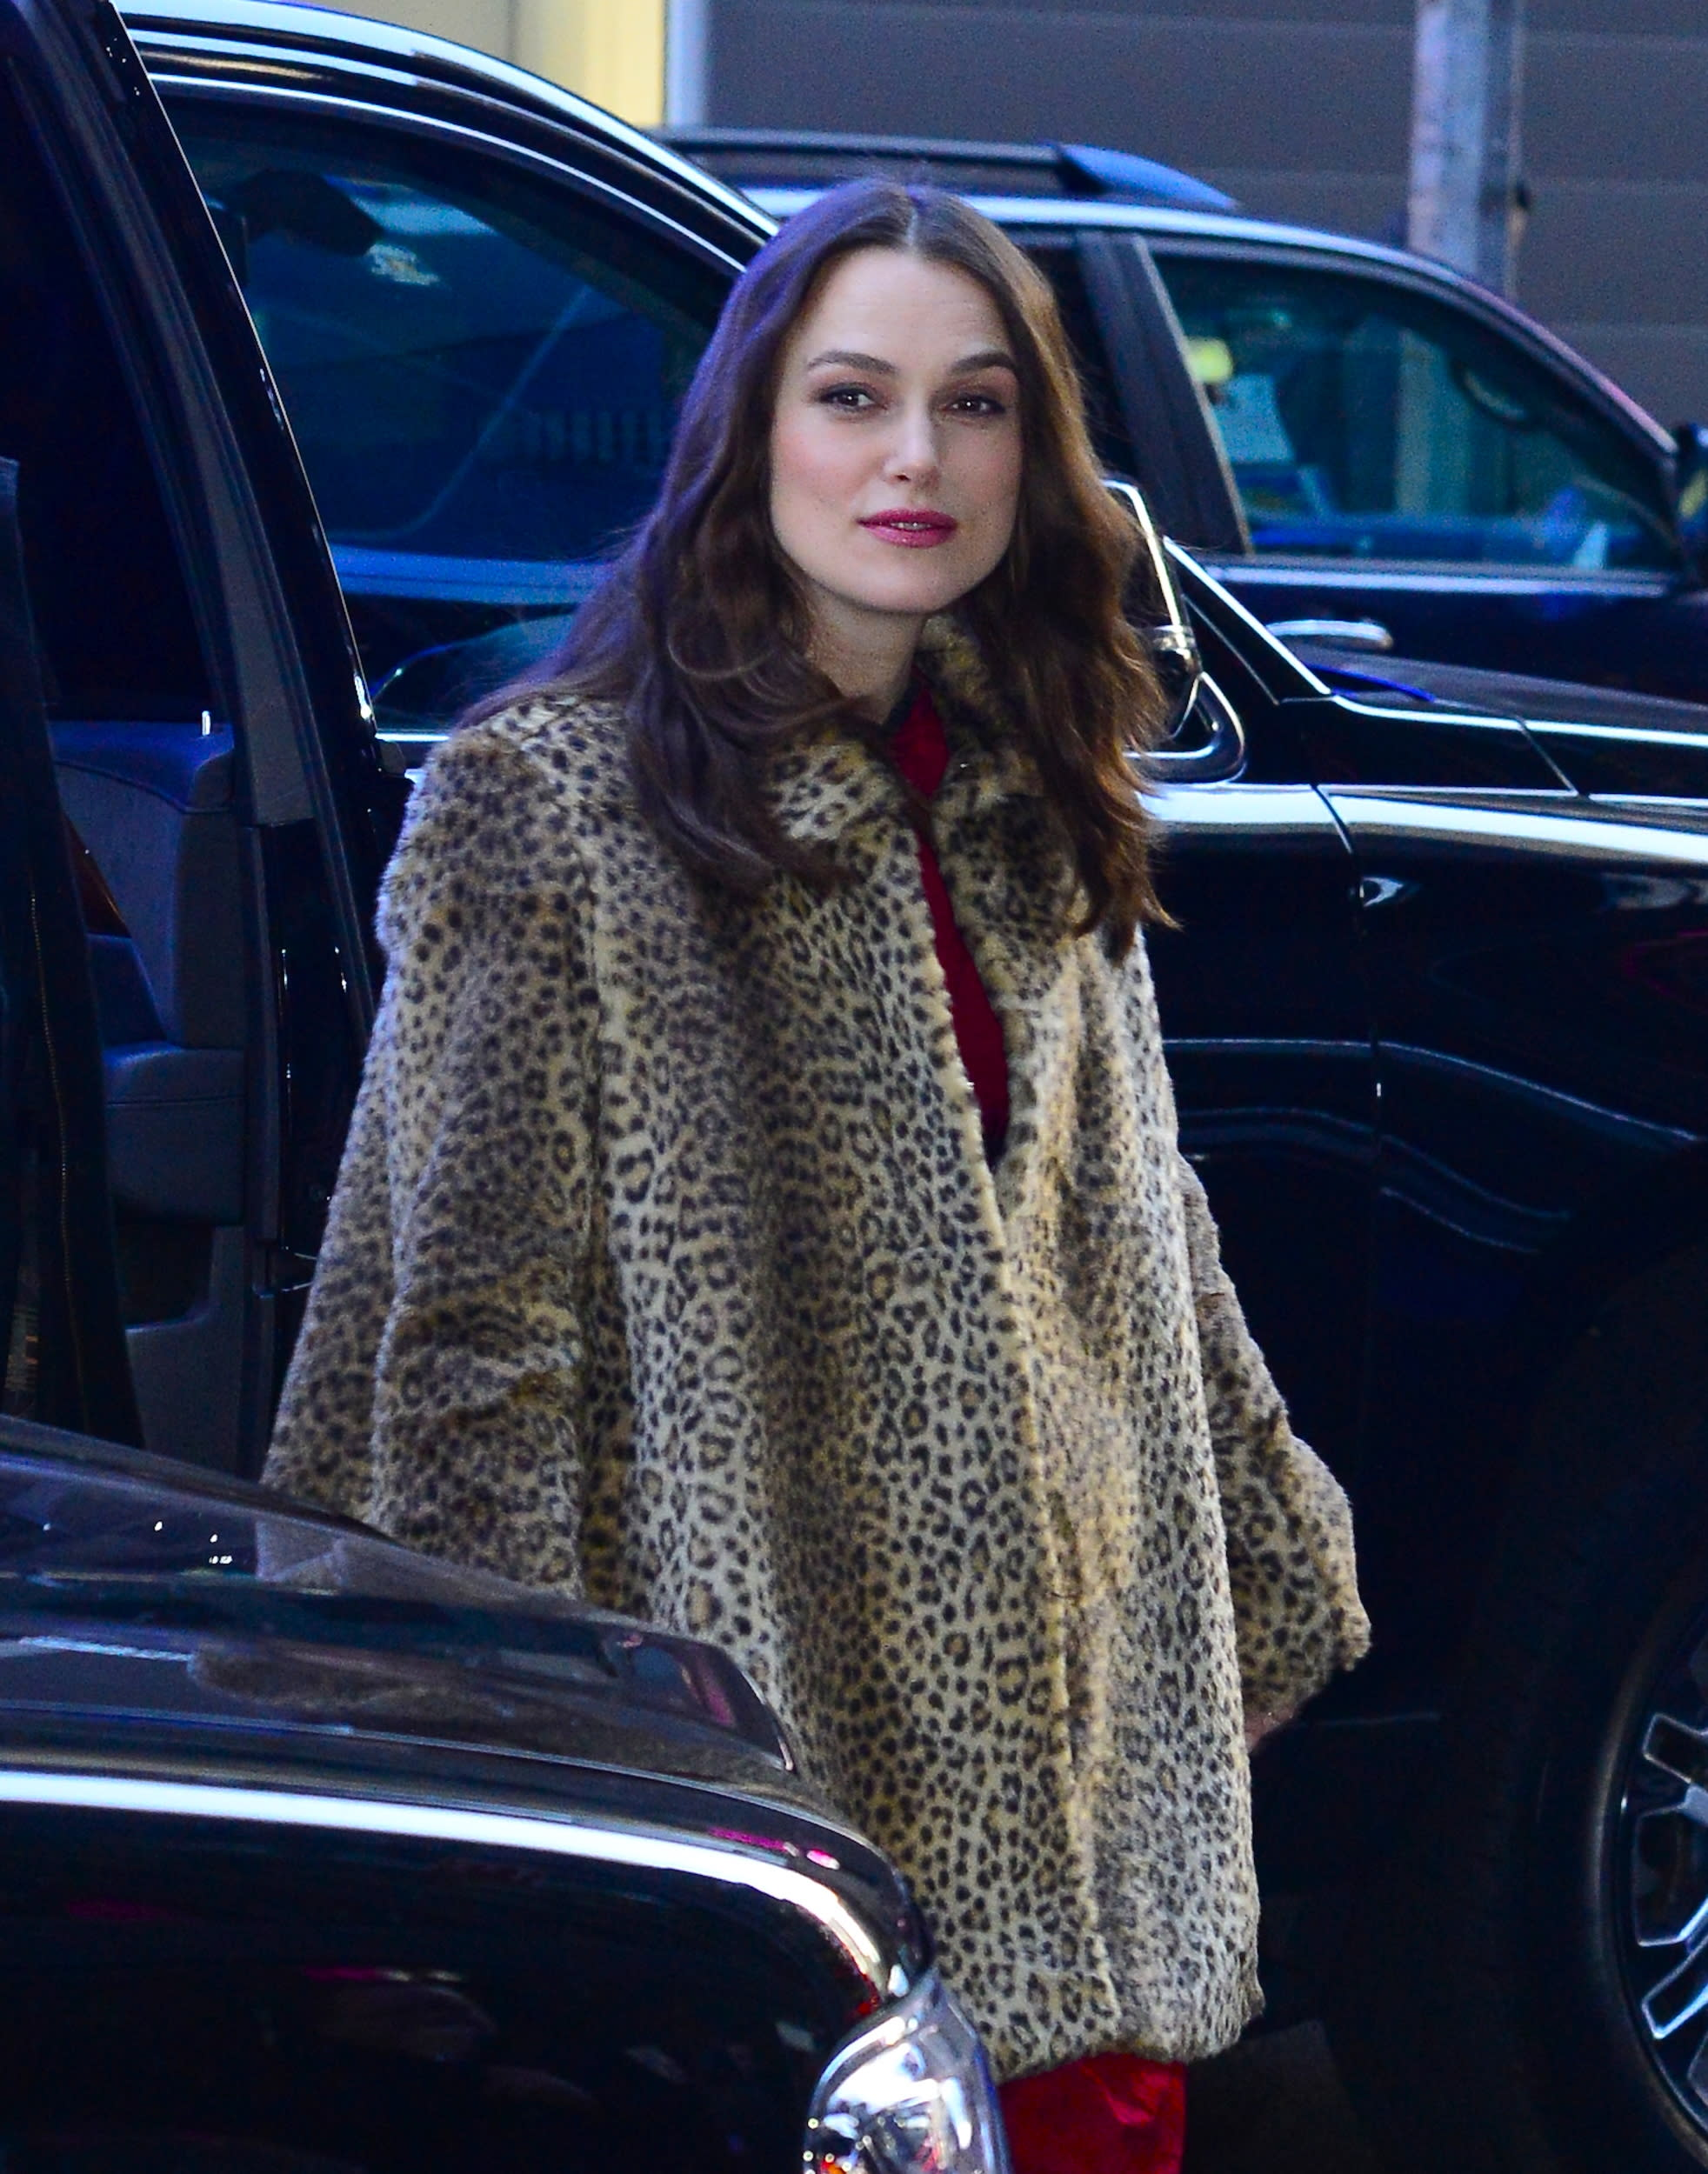 NEW YORK, NY - MARCH 13:  Actress Keira Knightley is seen outside Good Morning America on March 13, 2019 in New York City.  (Photo by Raymond Hall/GC Images)